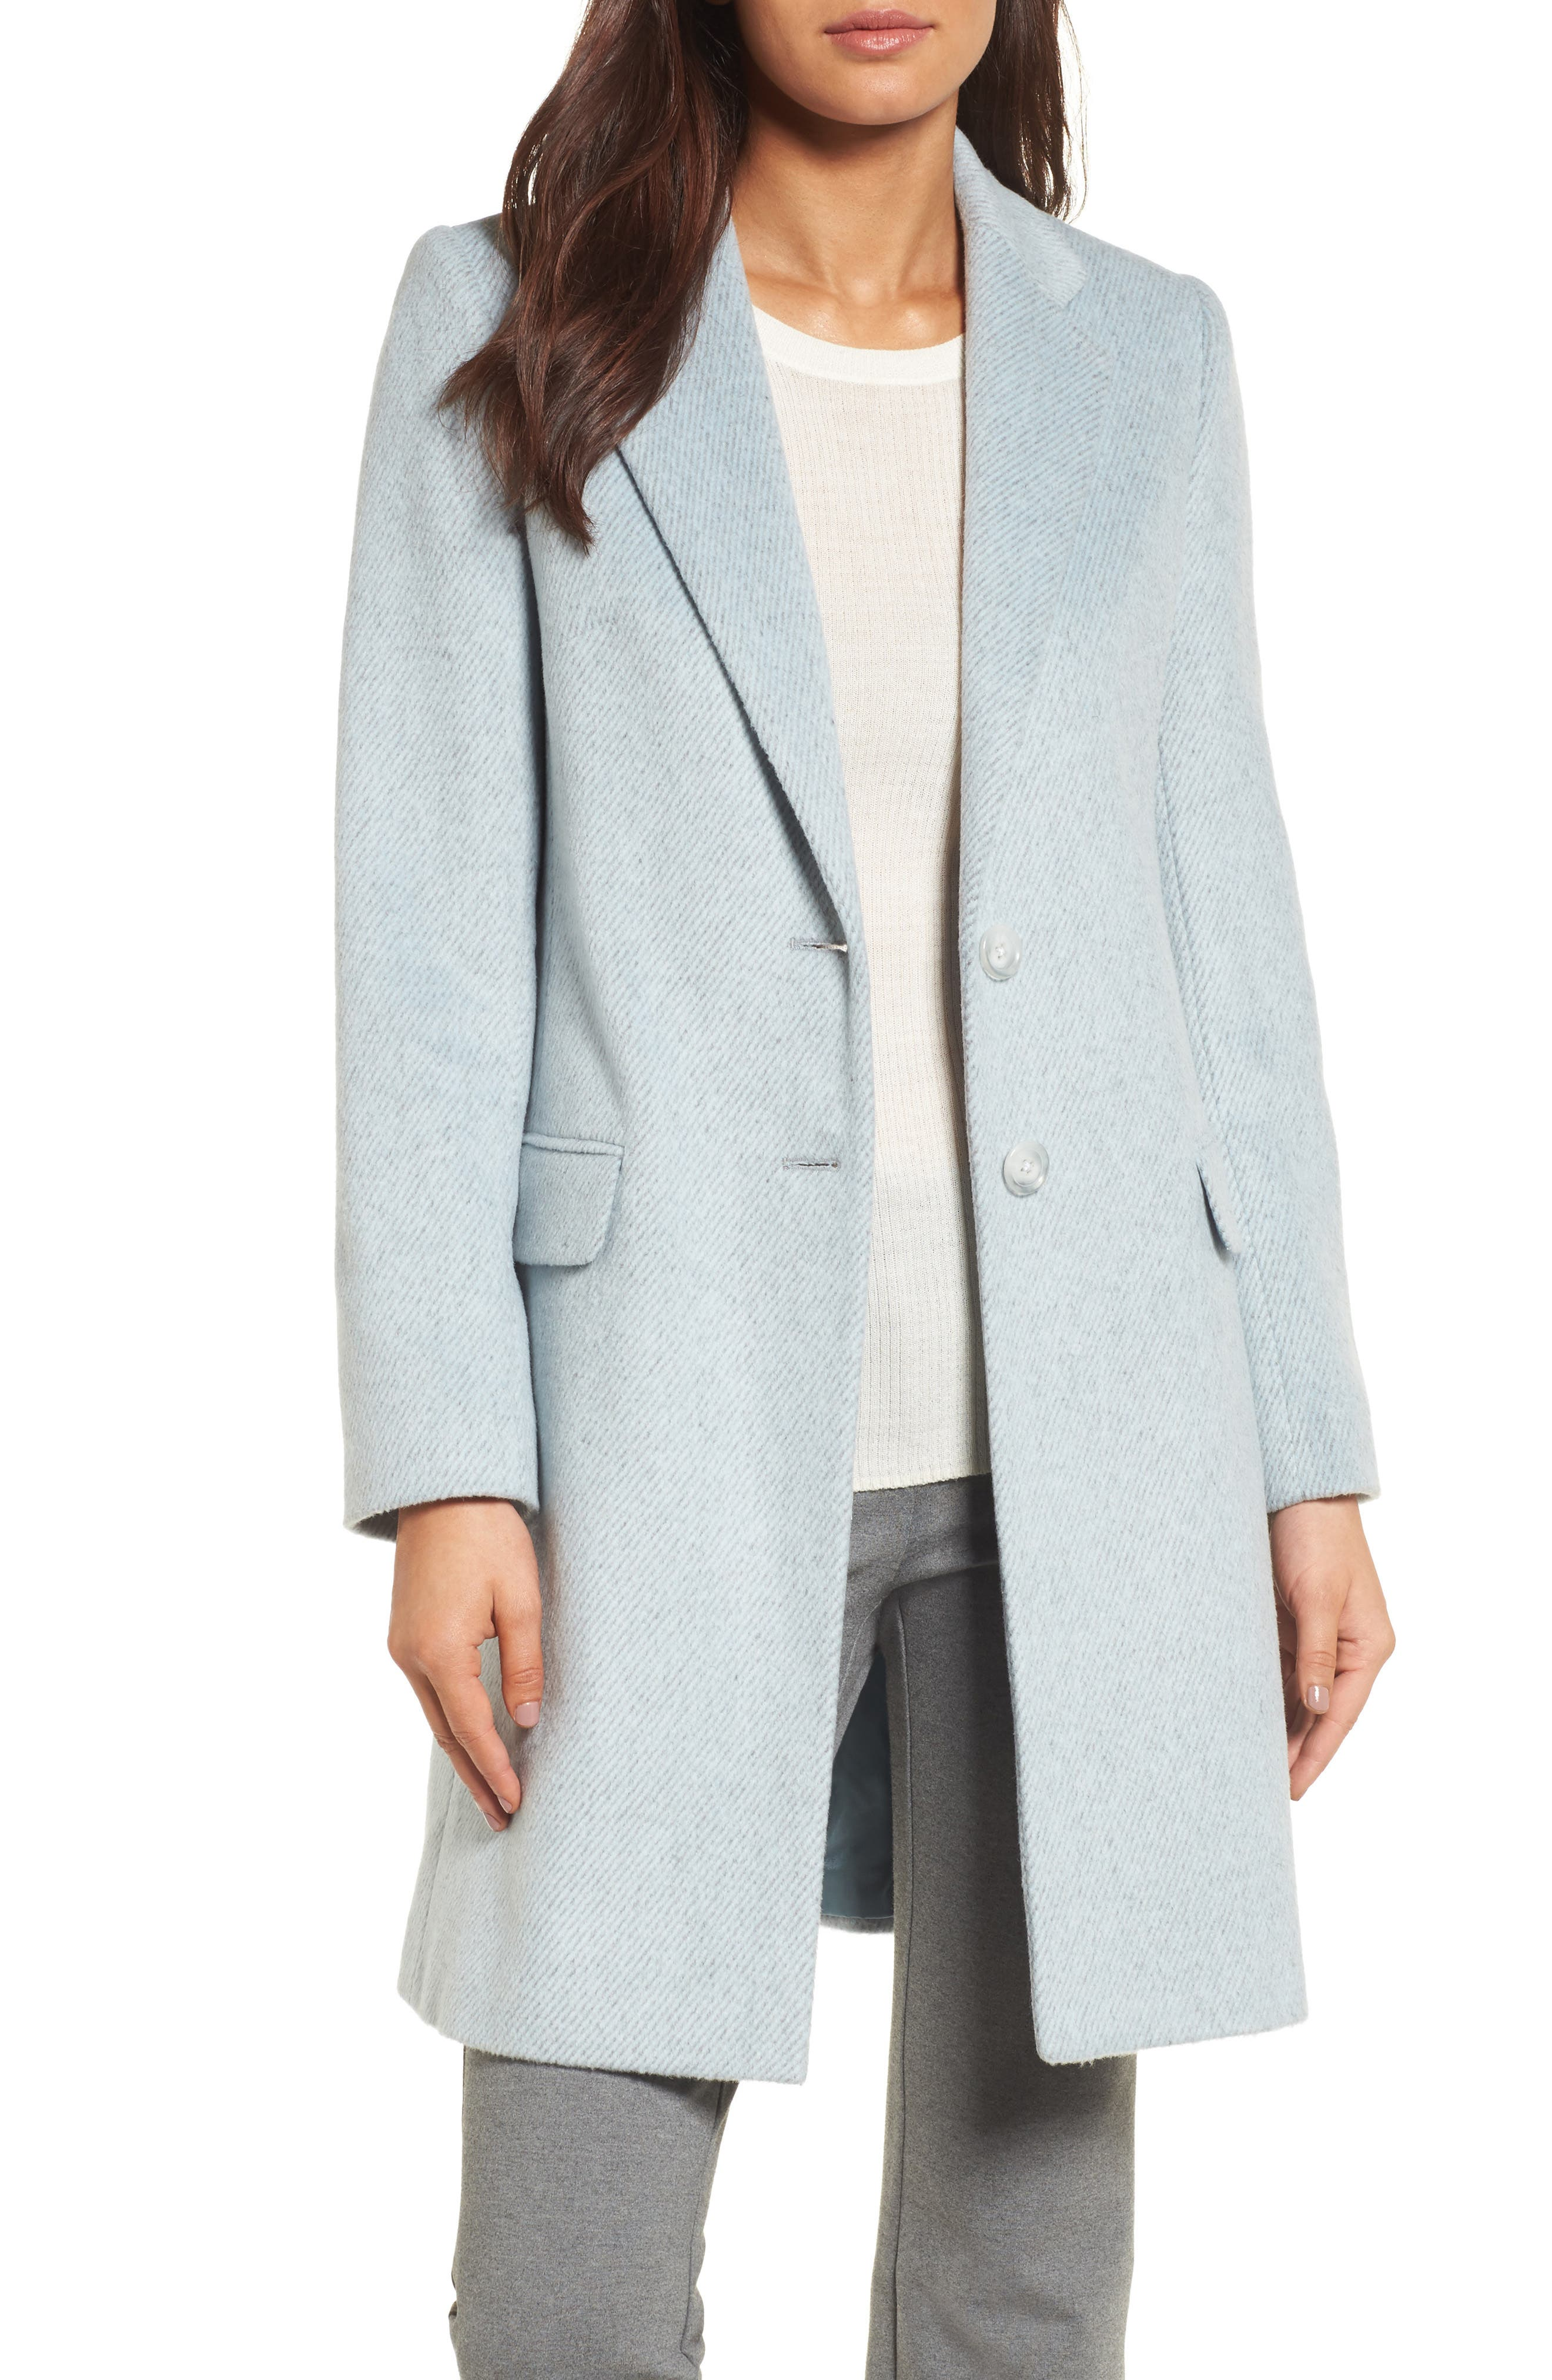 Charles Gray London Ducato College Coat